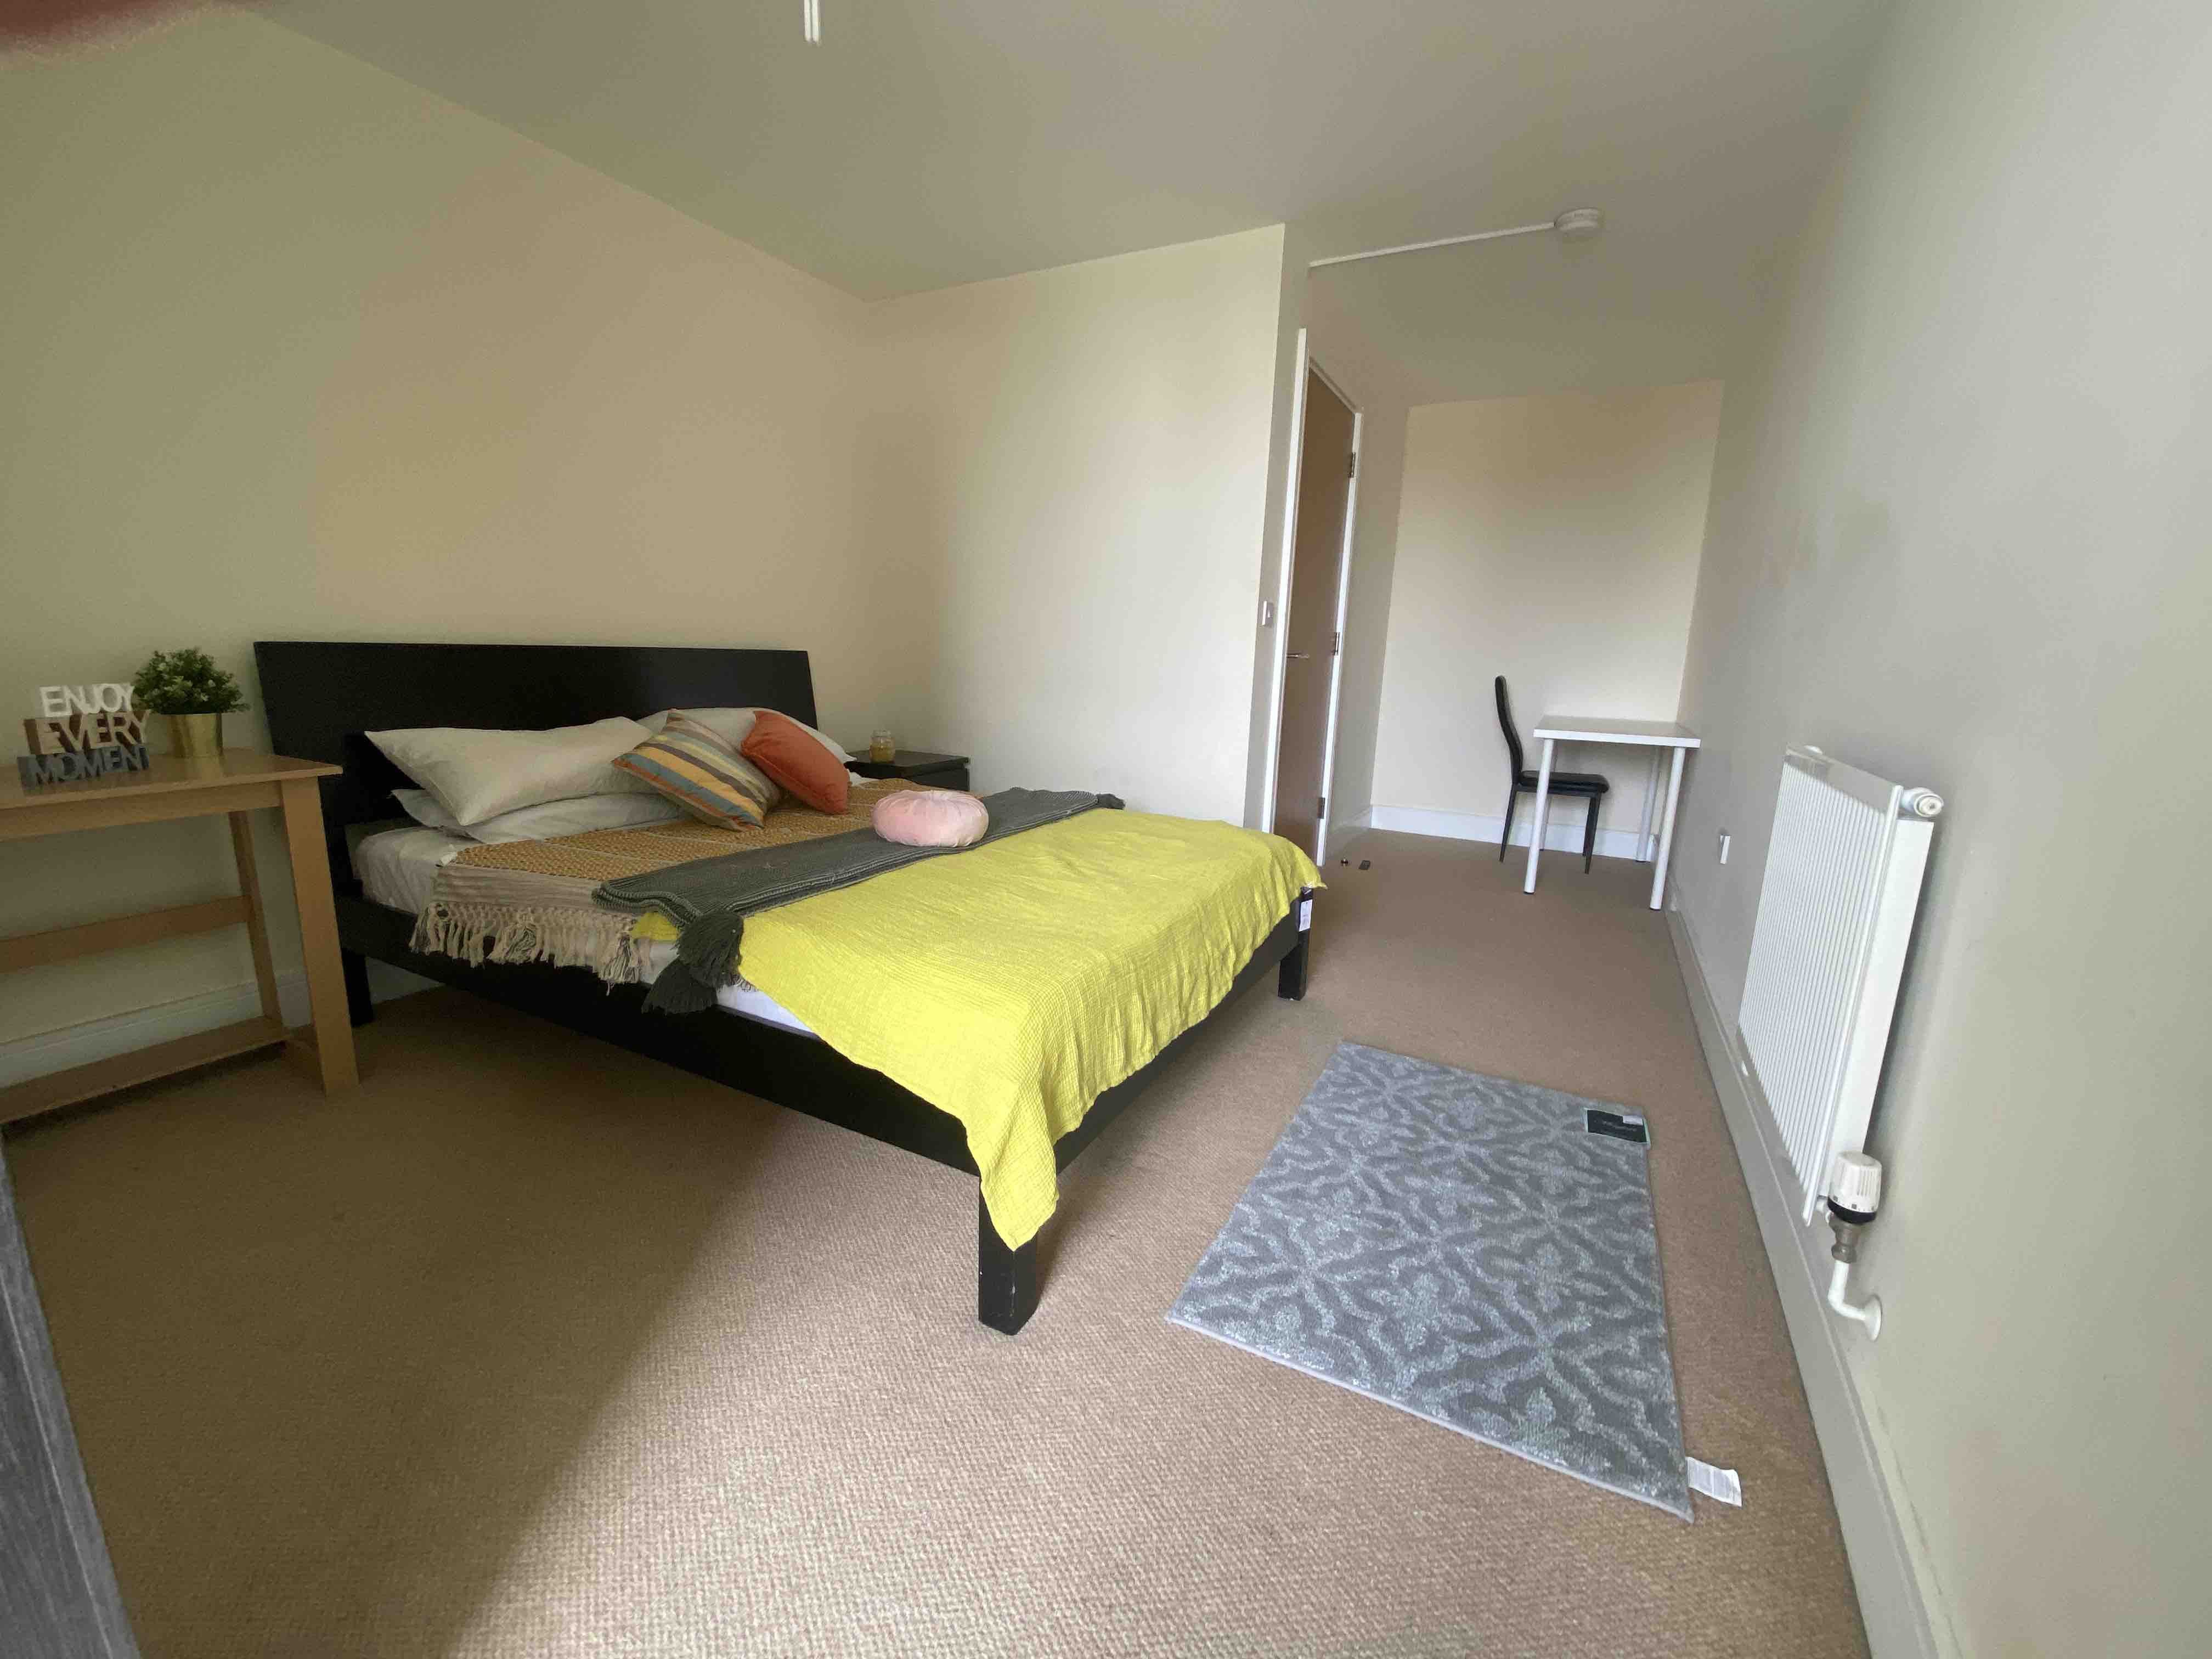 1 room in Cubitt Town, Canary Wharf, E14 9DJ RoomsLocal image